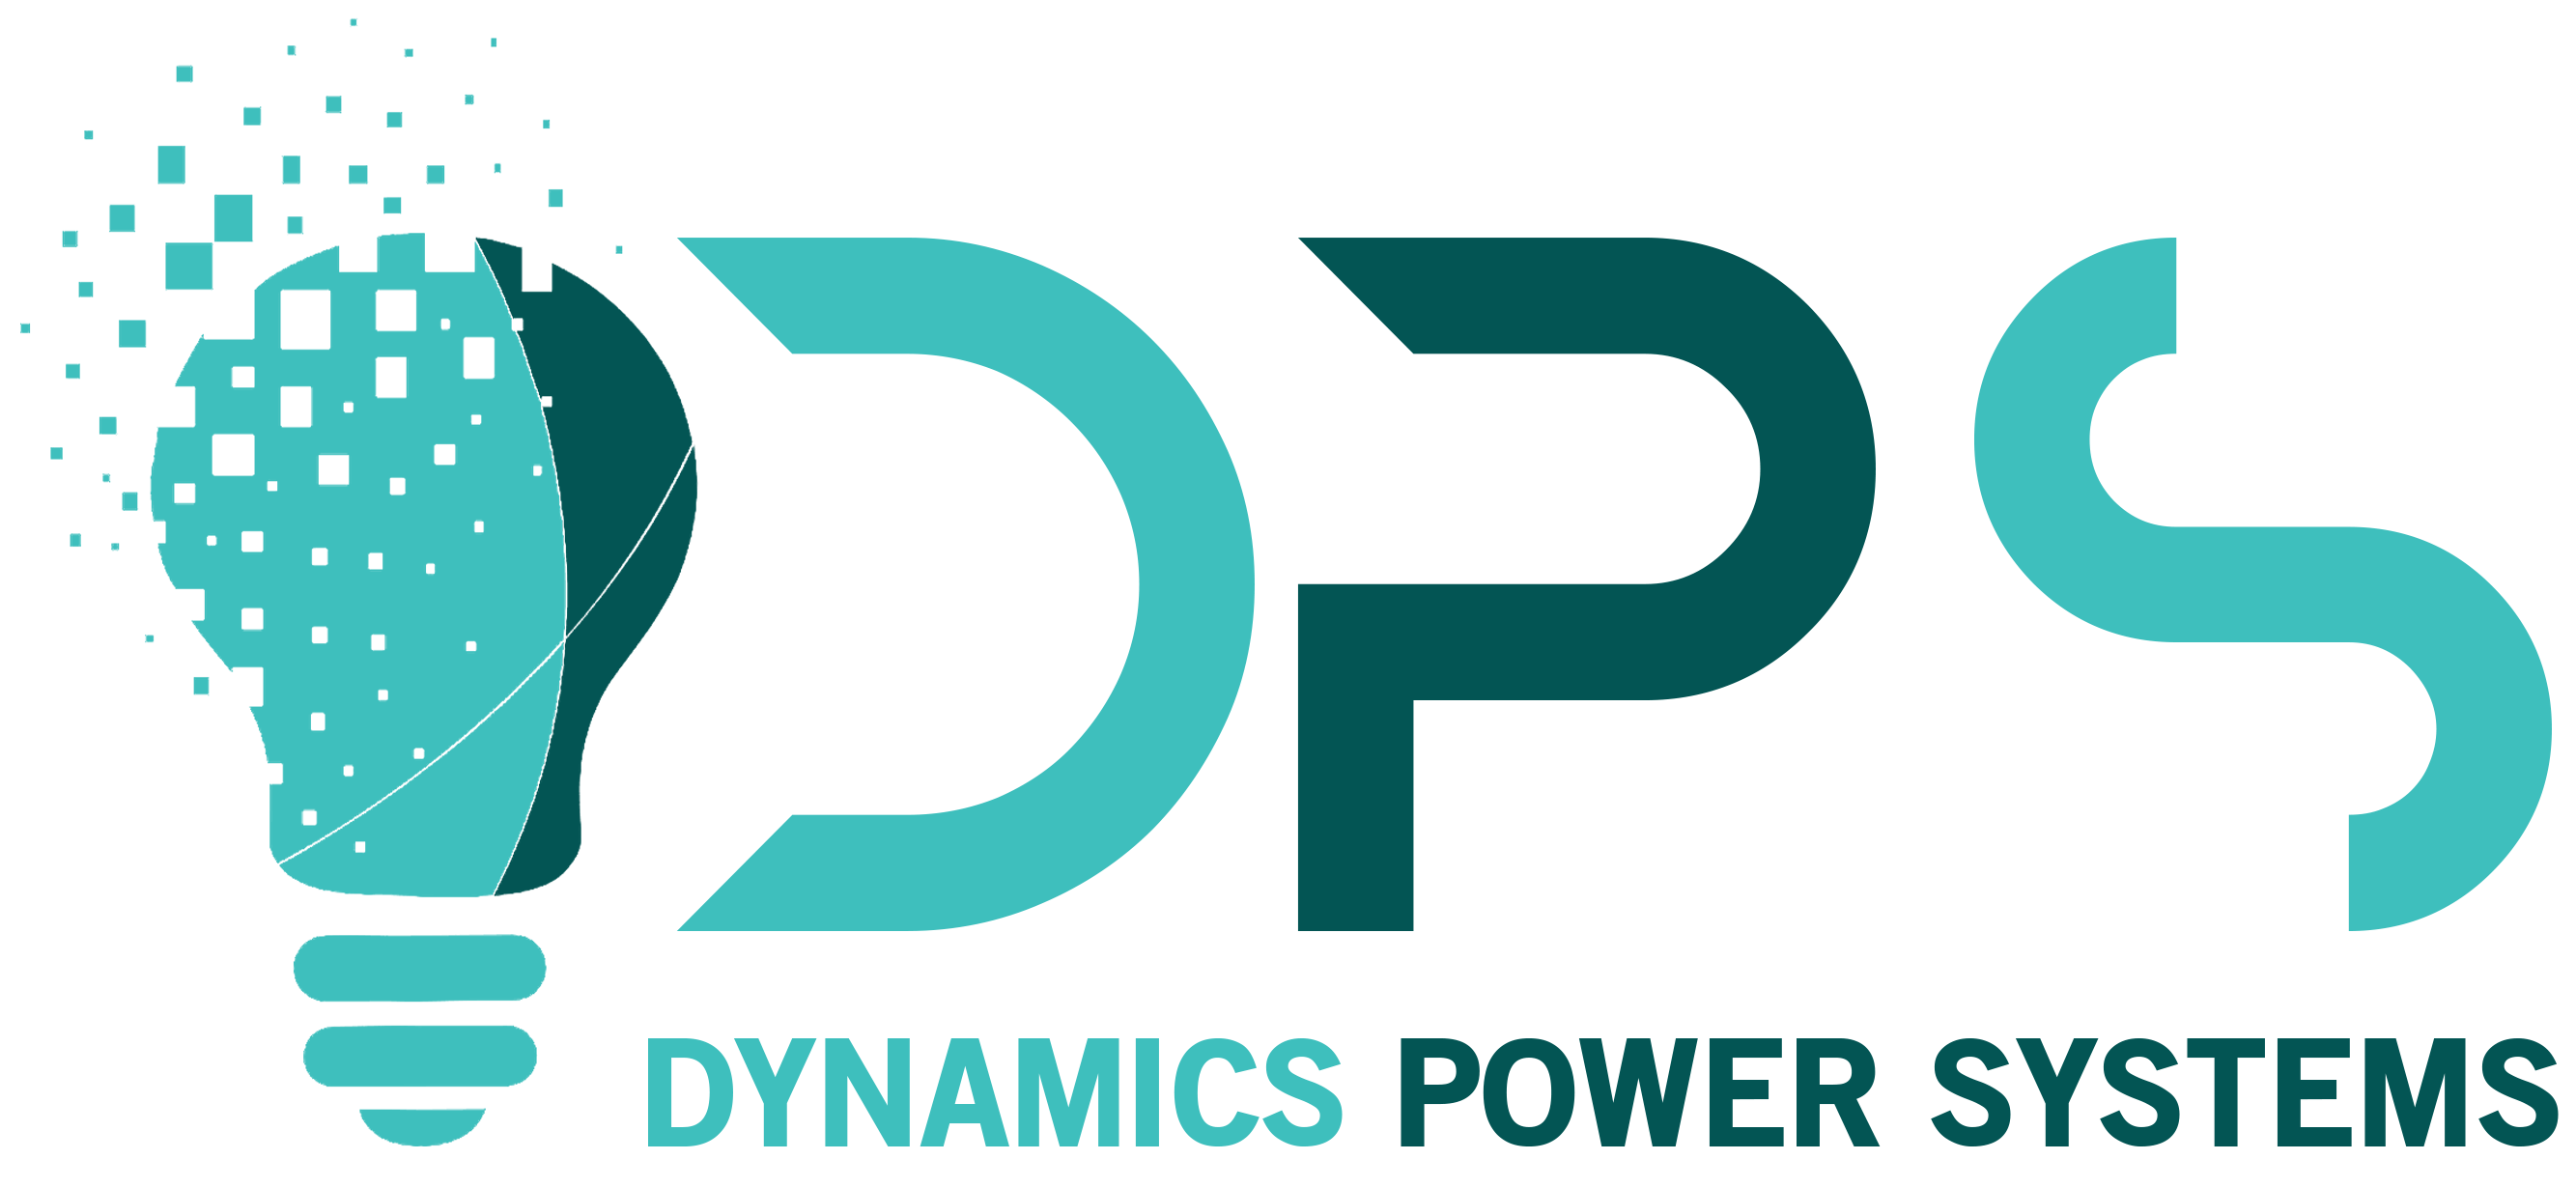 Dynamics Power Systems